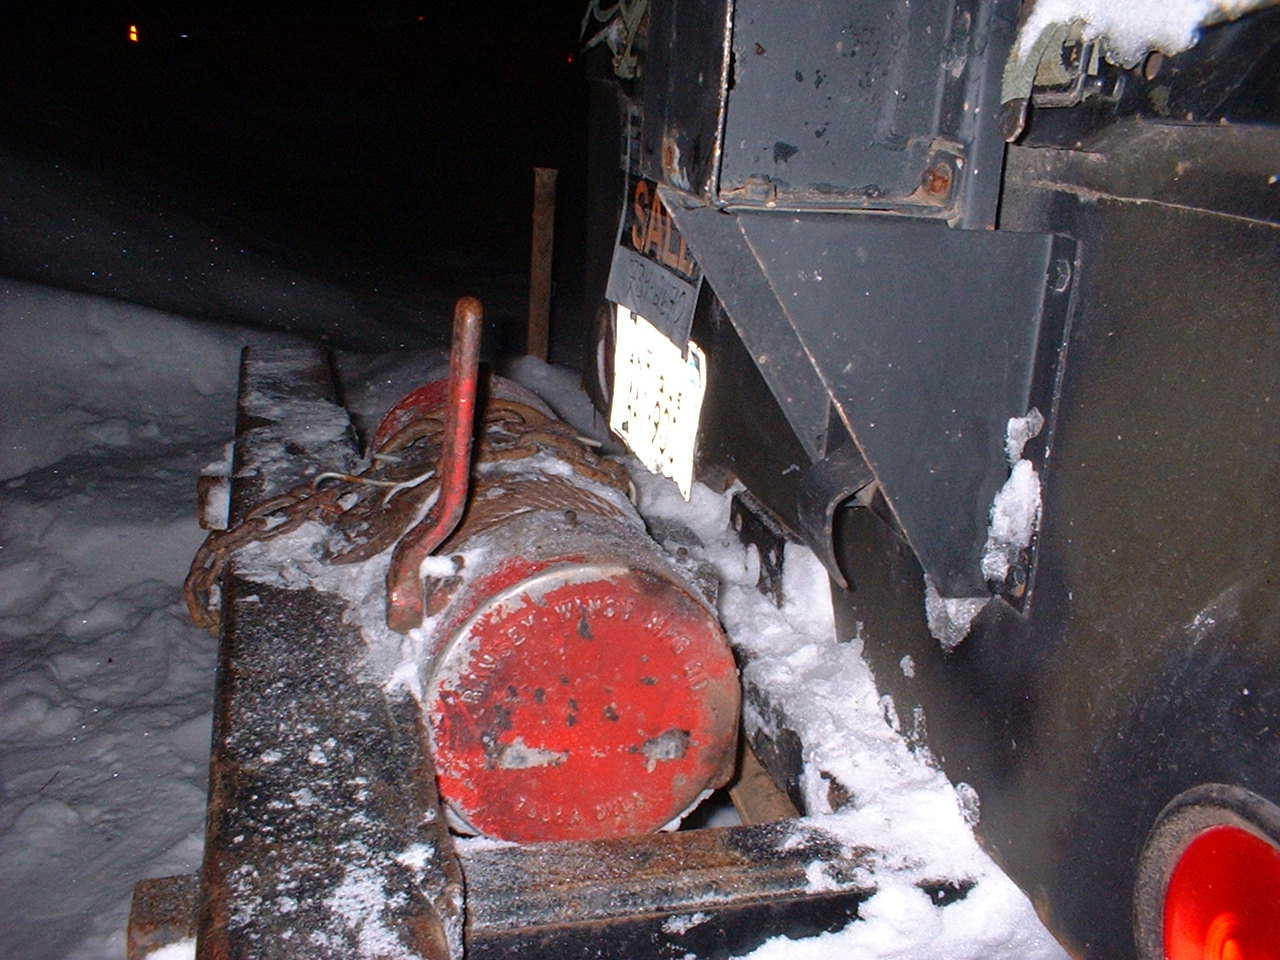 Amazing Ramsey Winch 246l Pictures - Electrical and Wiring Diagram on solar panels diagrams, dc connections diagram, tank ship diagrams, dc schematic diagrams, dc circuit diagram, dc motor diagram, motor schematic diagrams, dc power supply diagrams, motor connections diagrams, welding diagrams, dc elementary diagrams,